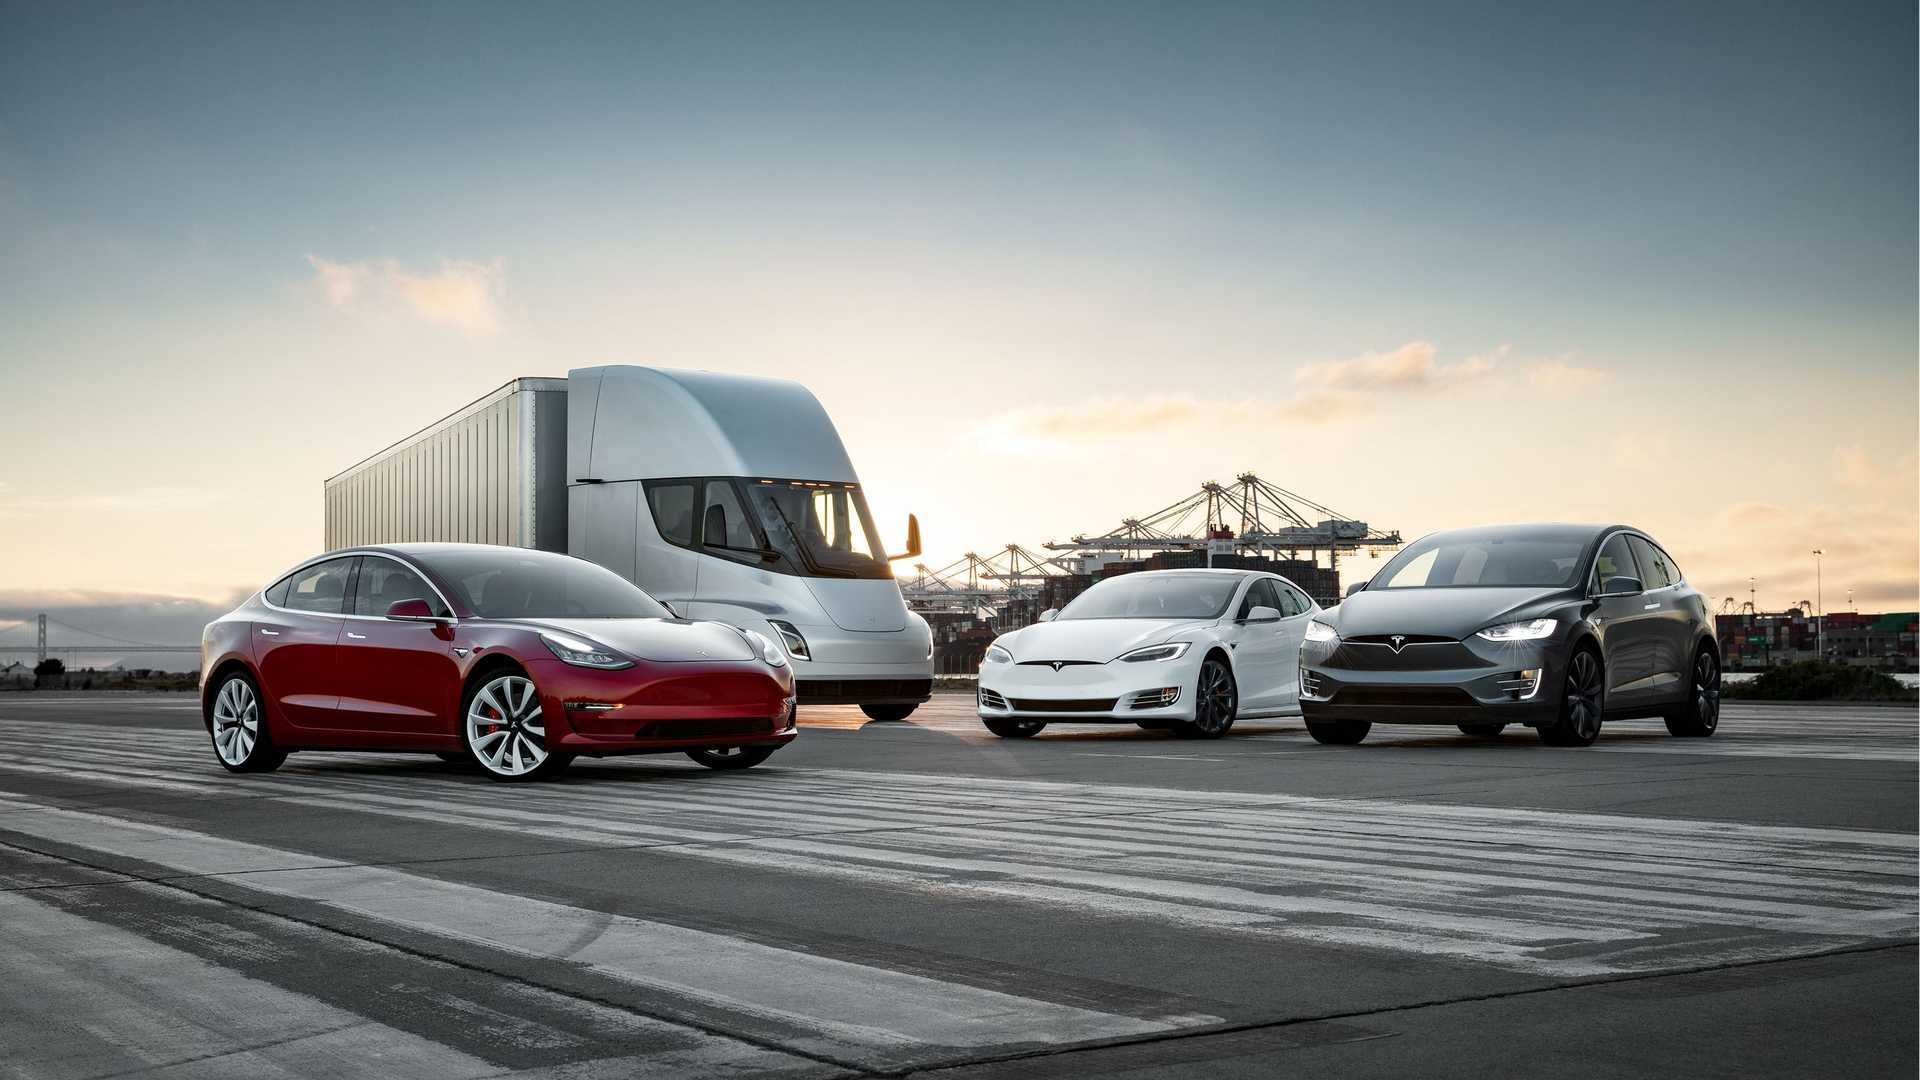 Tesla's market value is now higher than GM and Ford combined